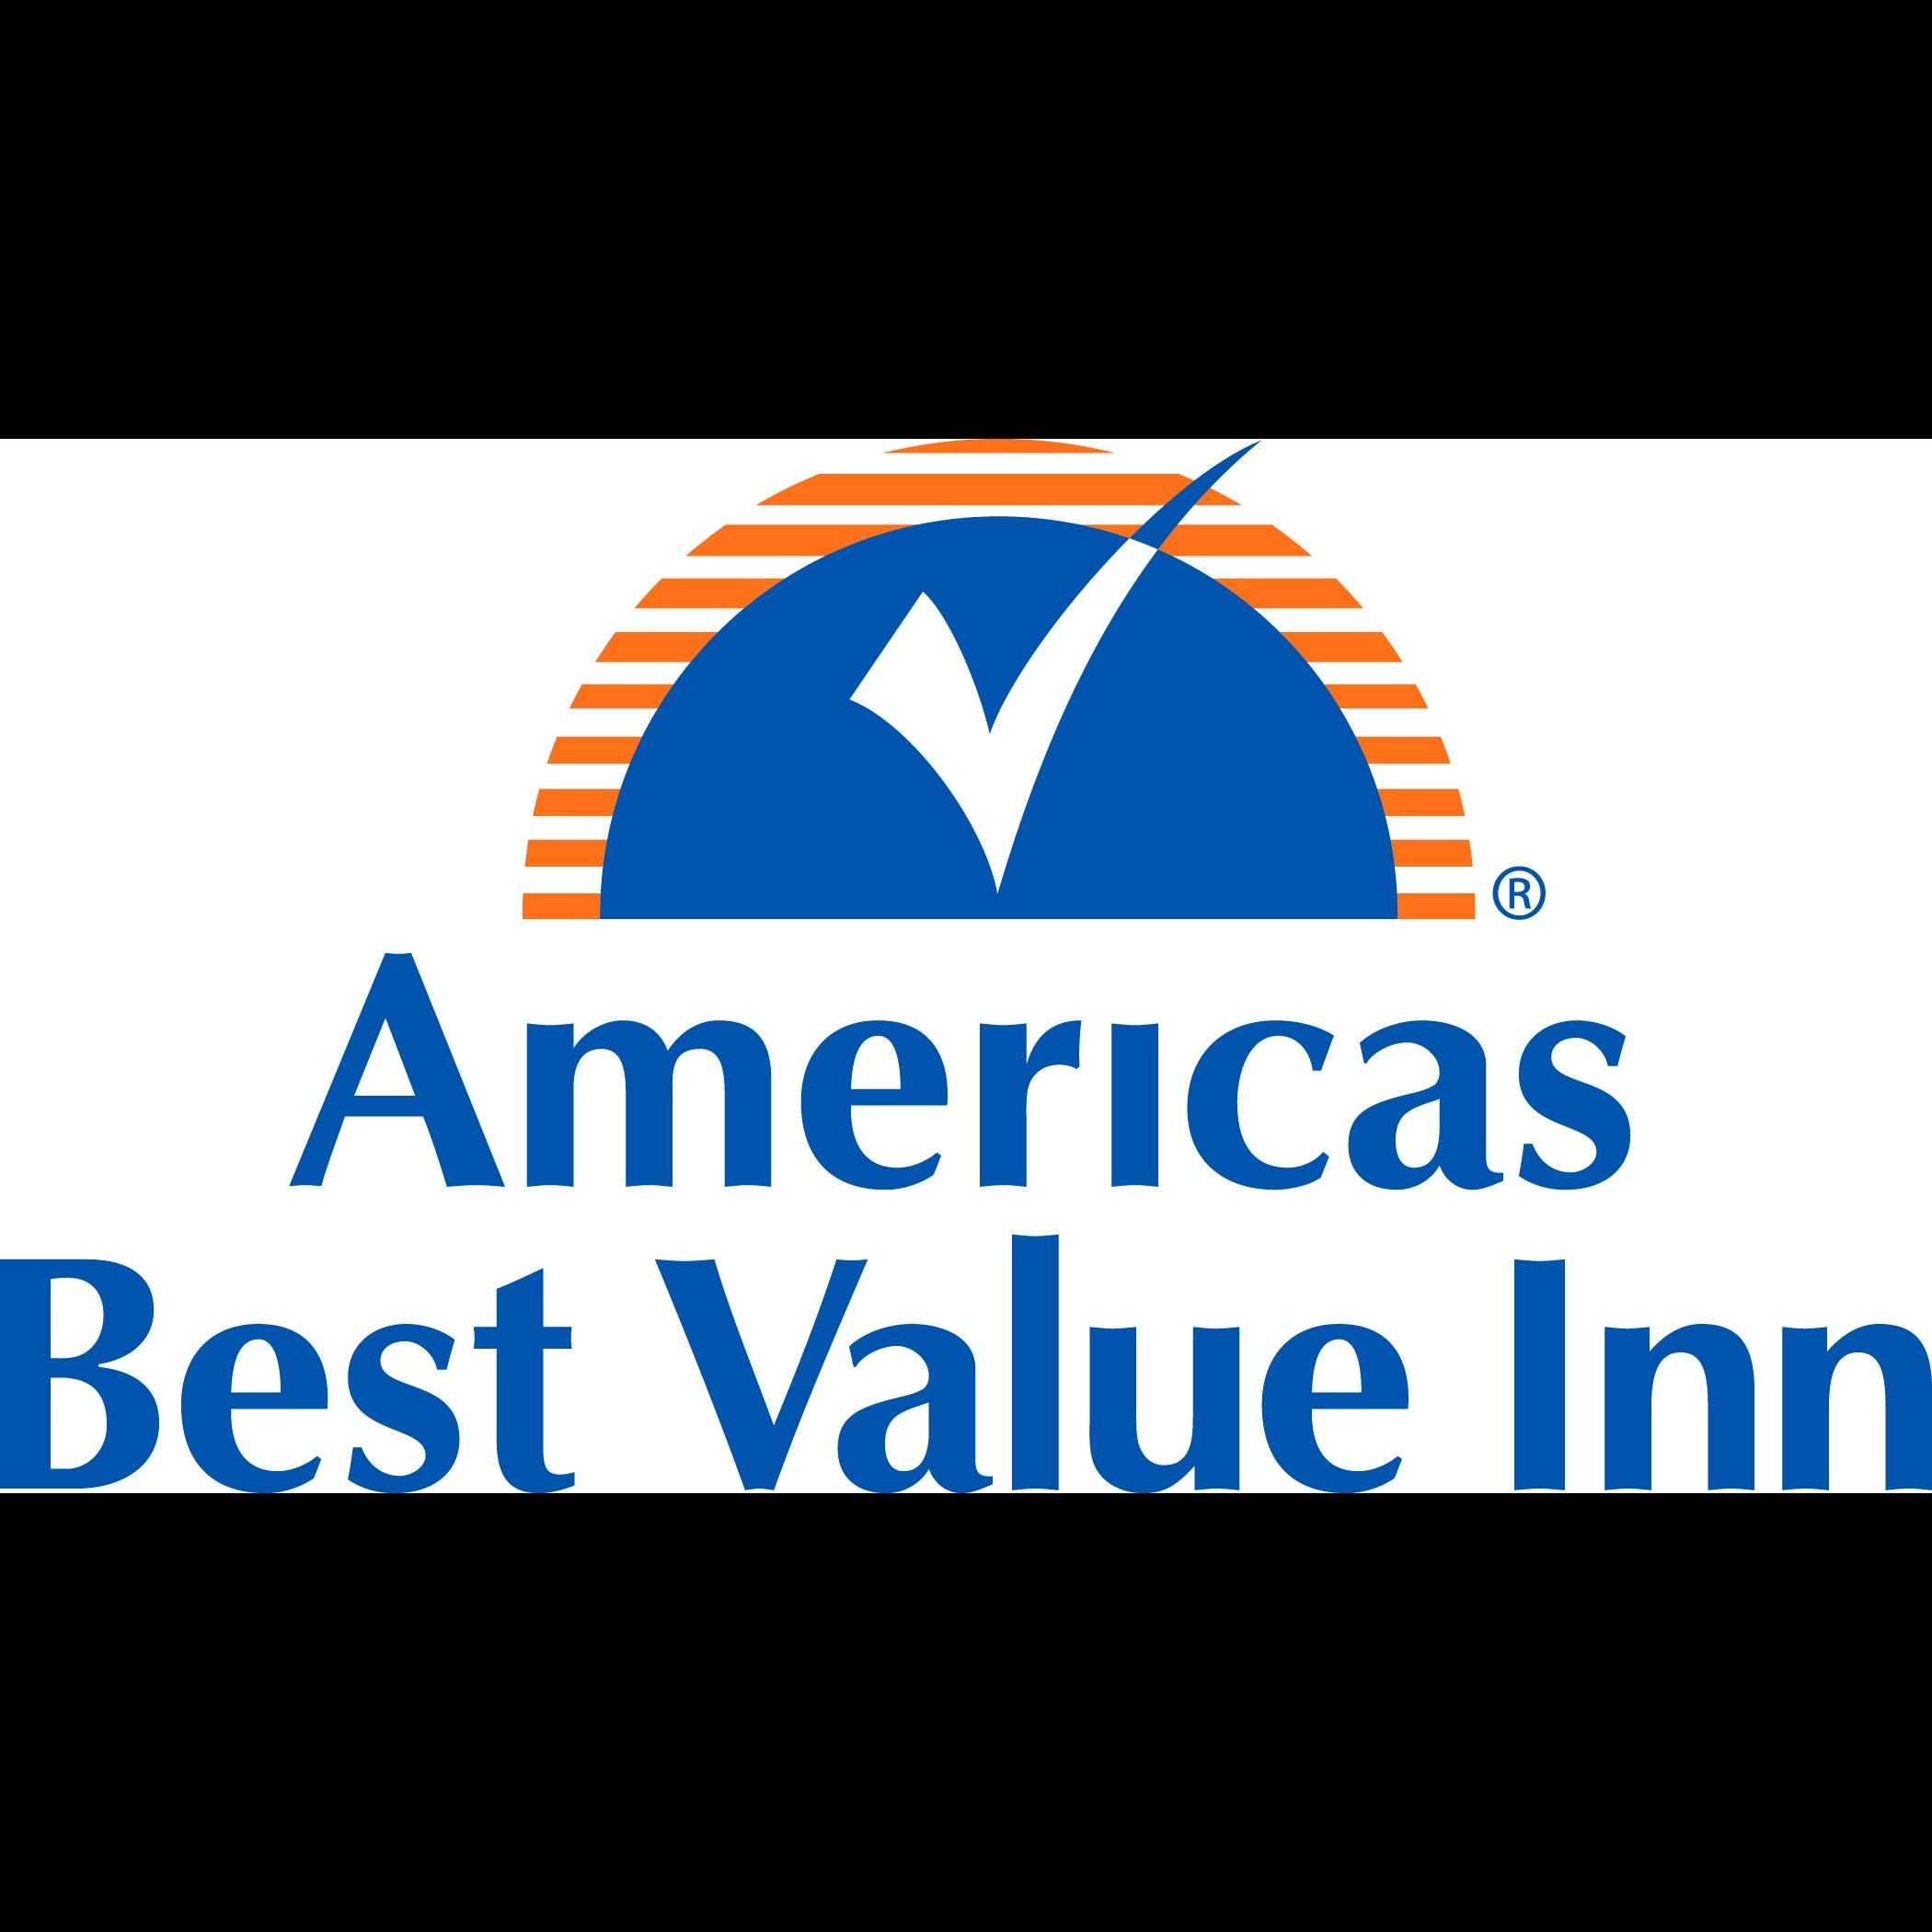 Americas Best Value Inn - Ardmore Tennessee